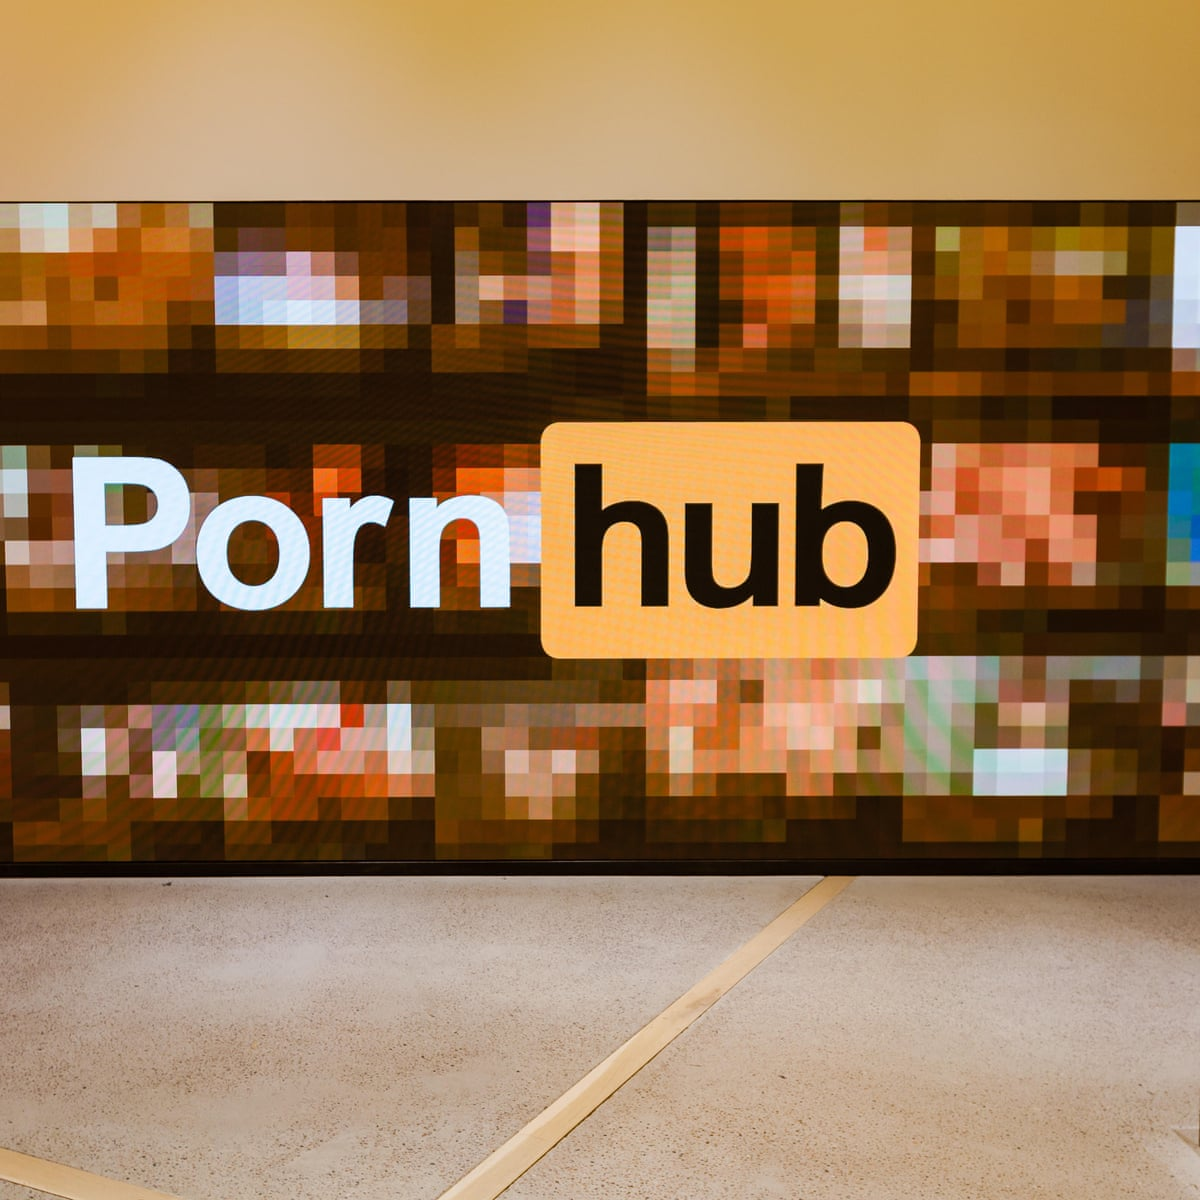 Application Porn pornhub should forget the coronavirus and focus on its own